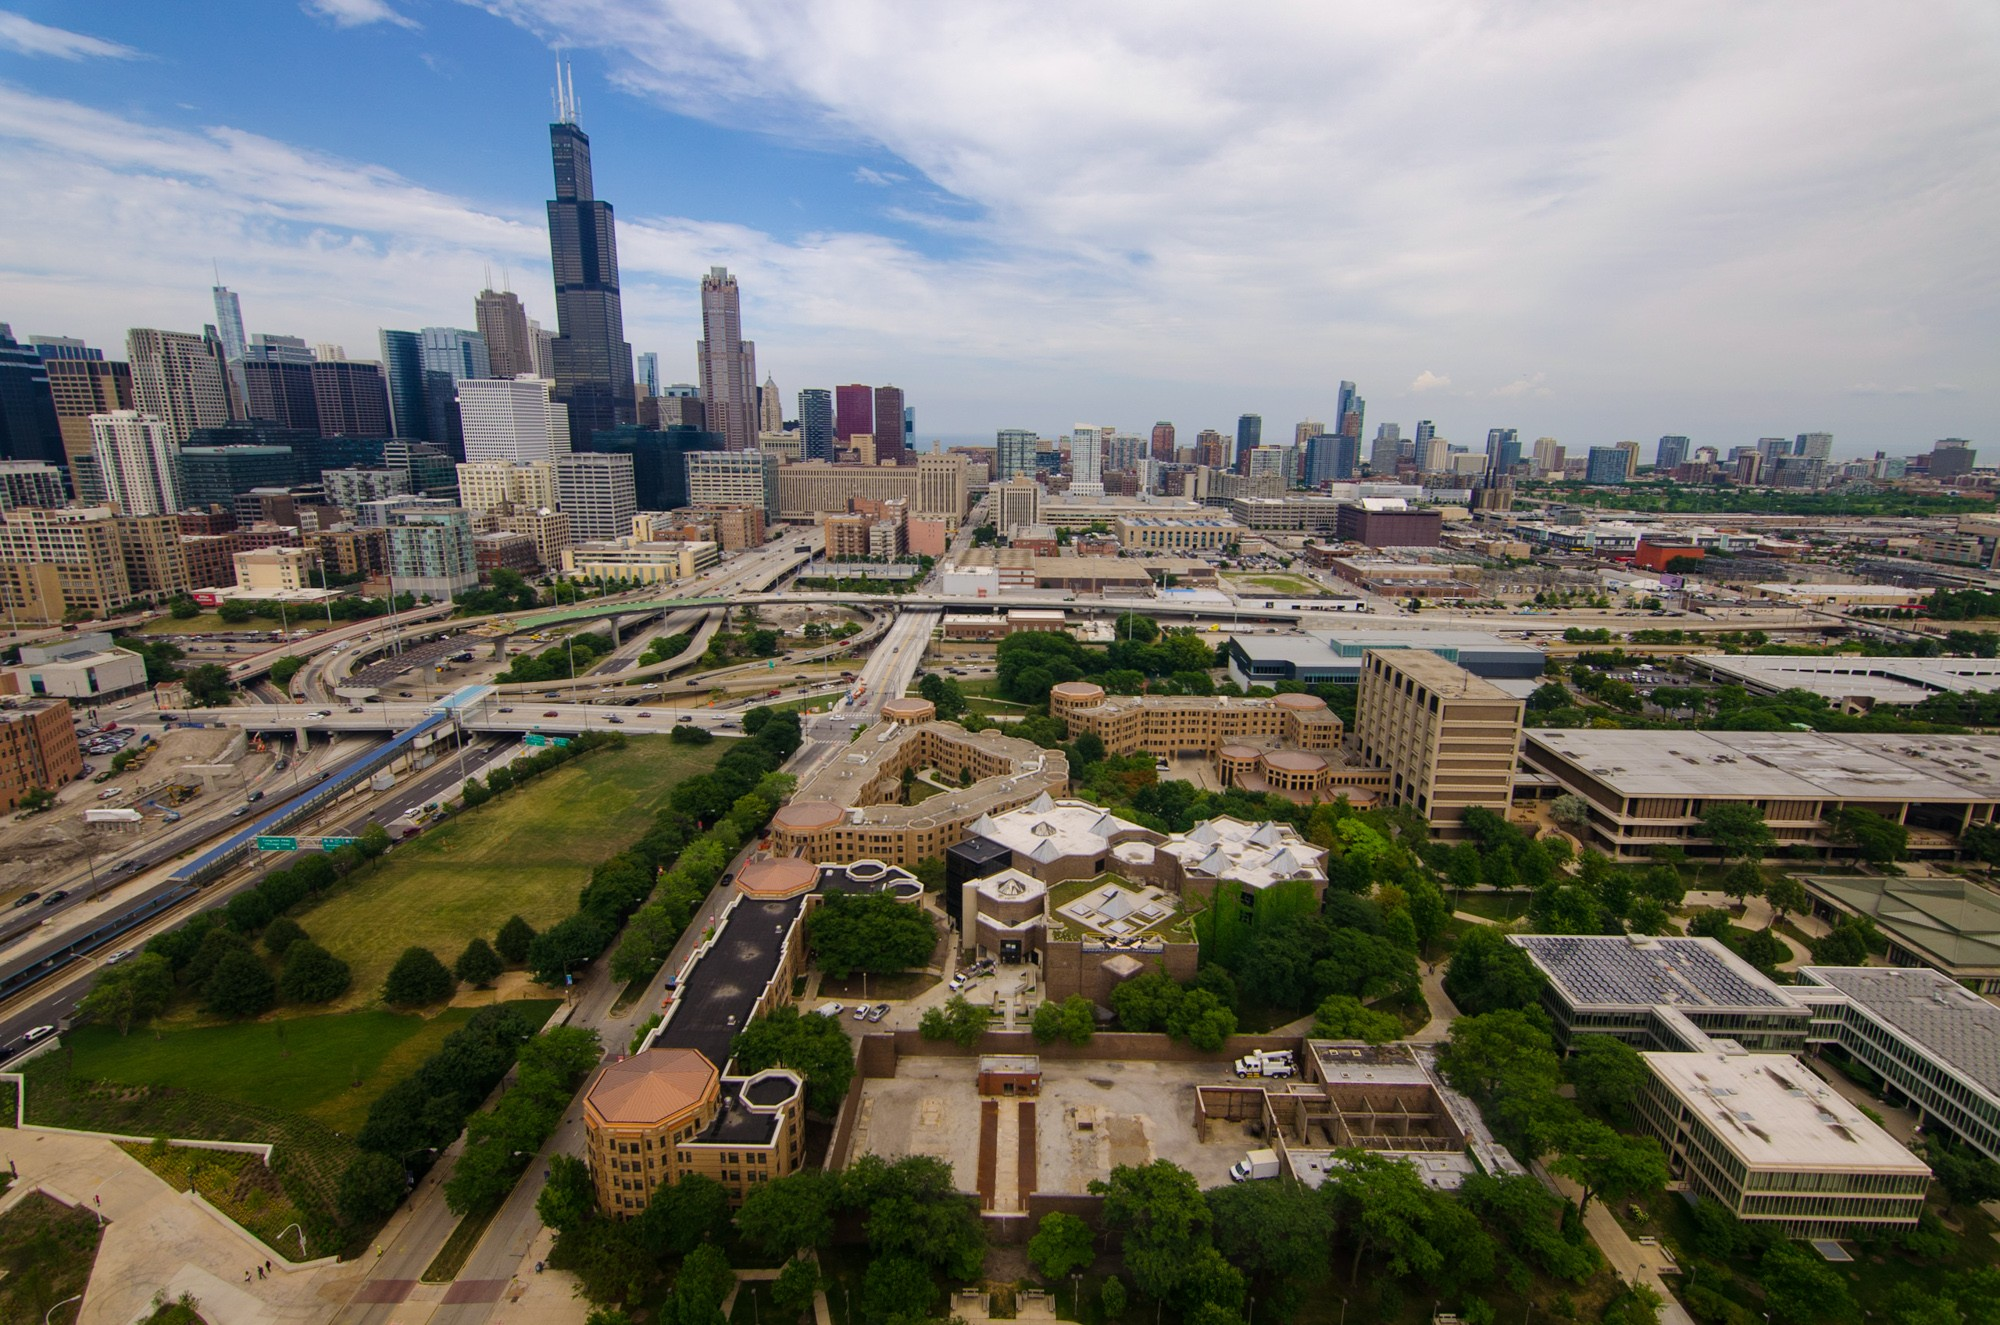 Uic Chicago Images Diagram Writing Sample Ideas And Guide